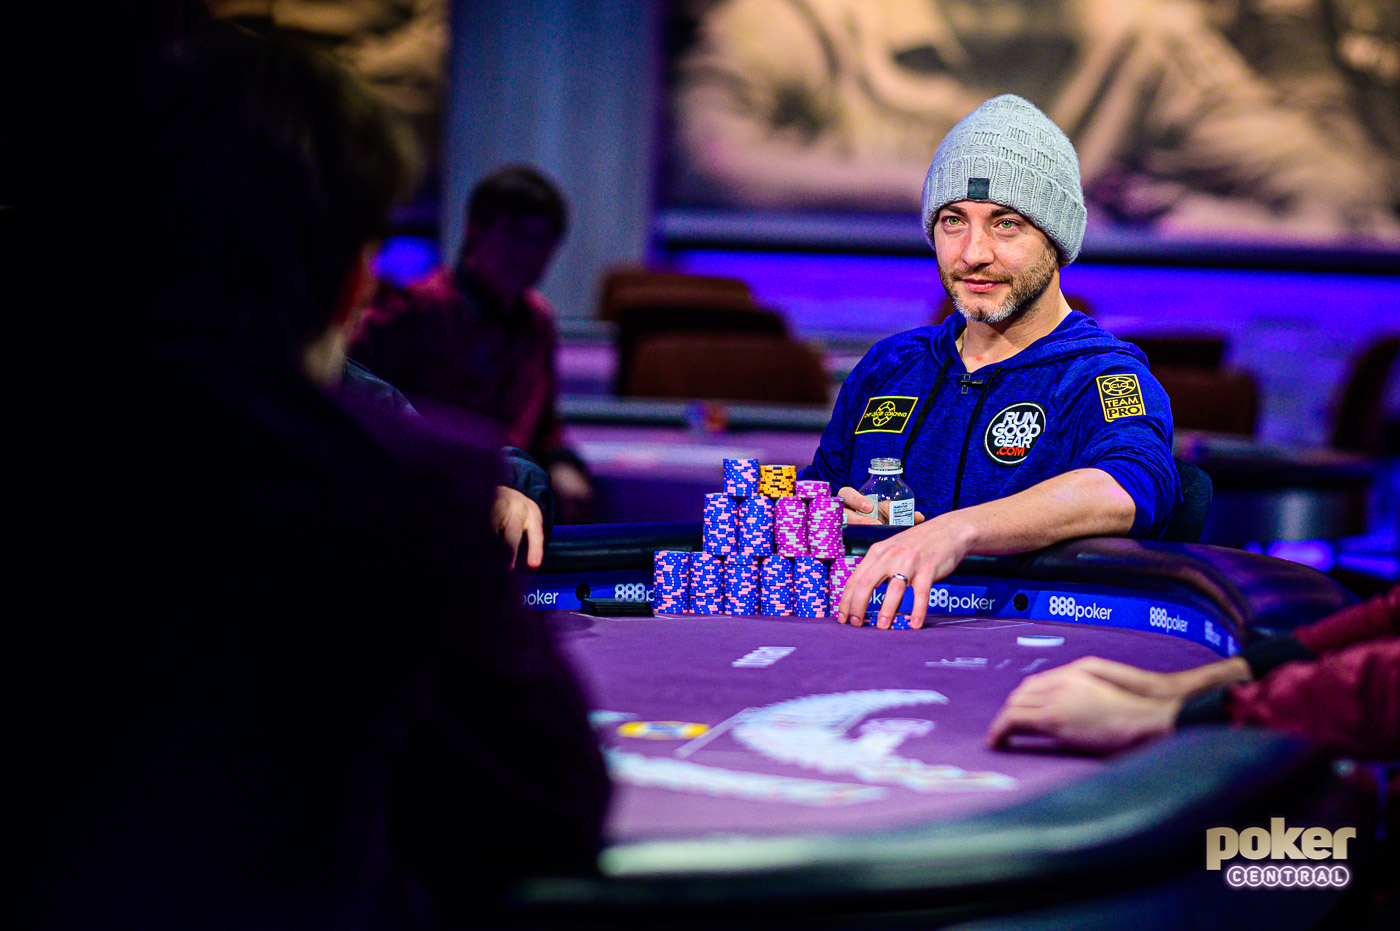 Chance Kornuth at the final table of the $25,000 No Limit Hold'em event at the 2019 Poker Masters.